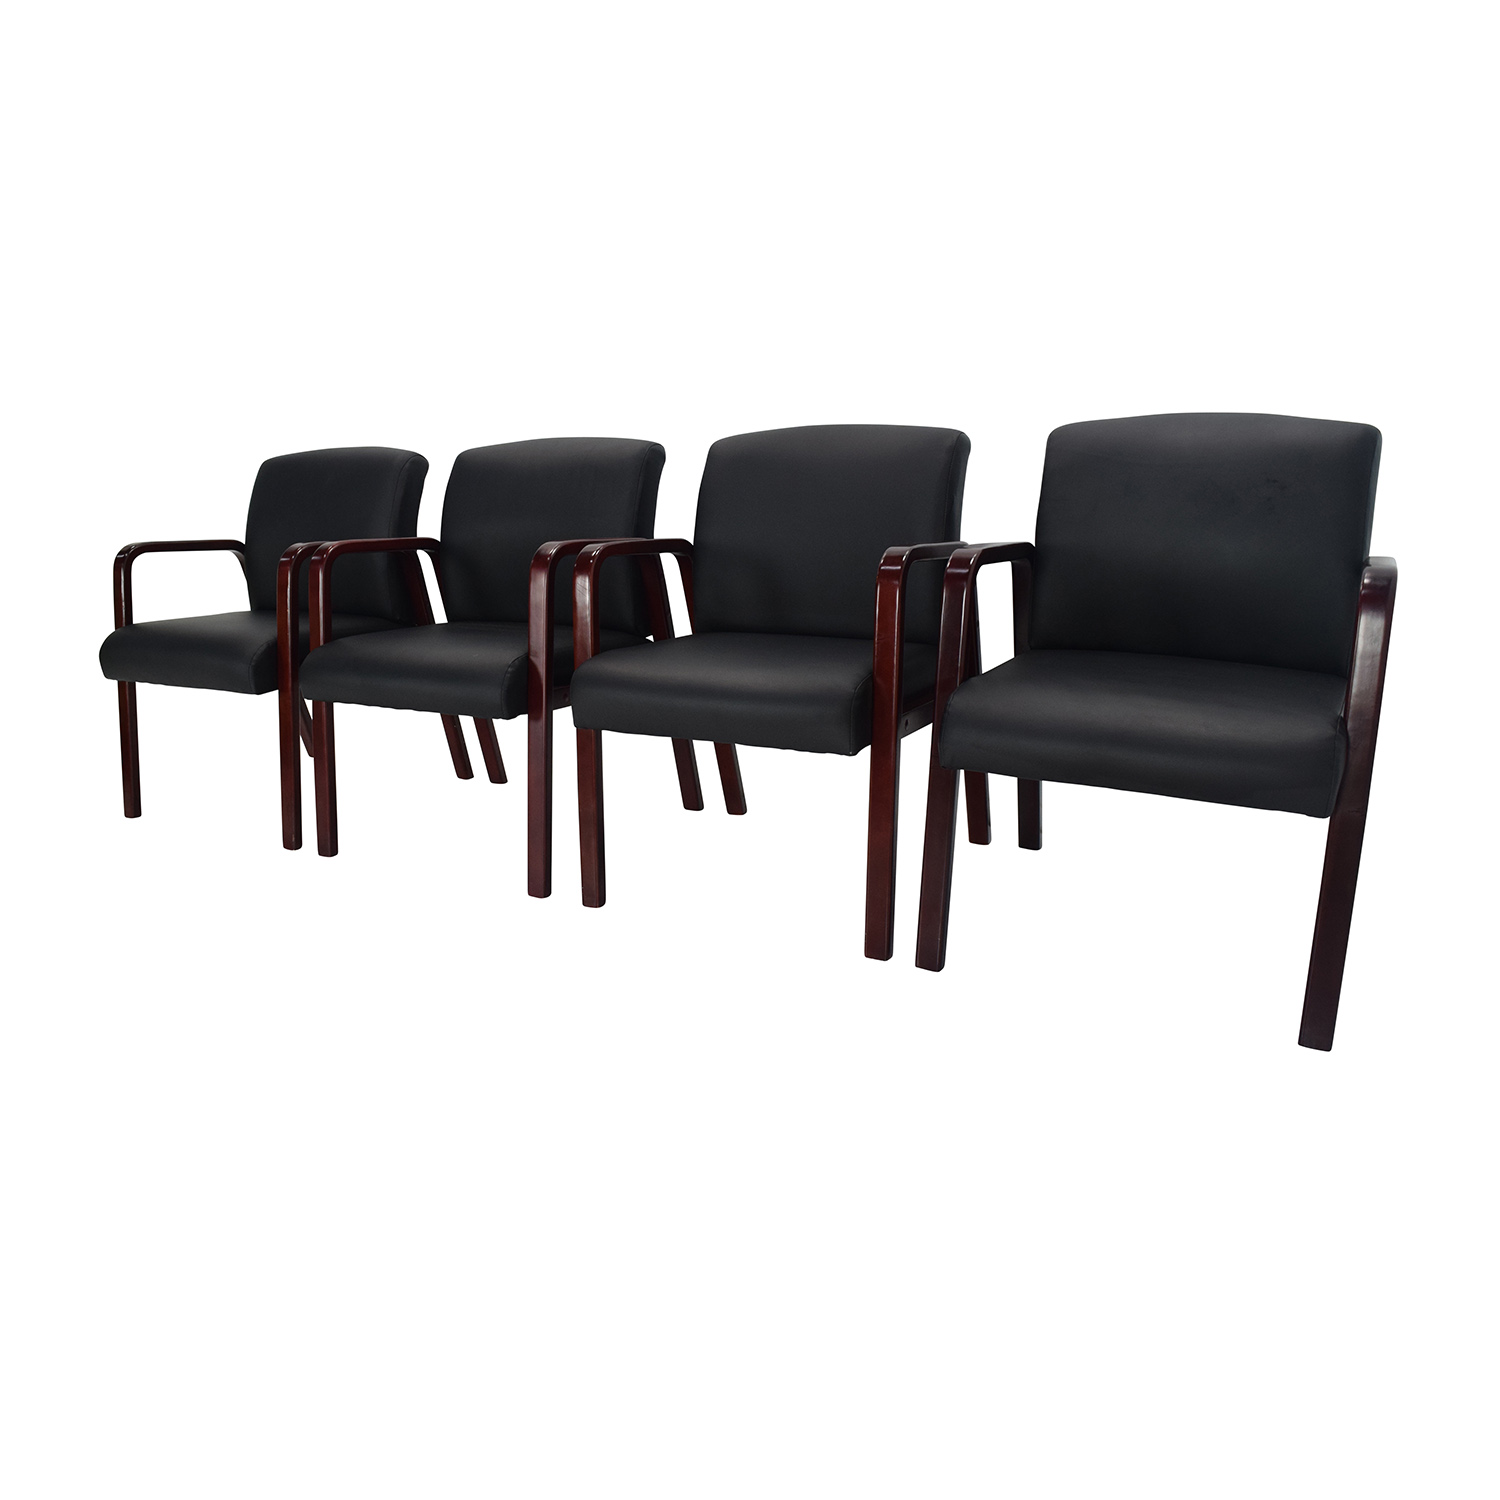 89 off office max set of 4 office chairs chairs. Black Bedroom Furniture Sets. Home Design Ideas